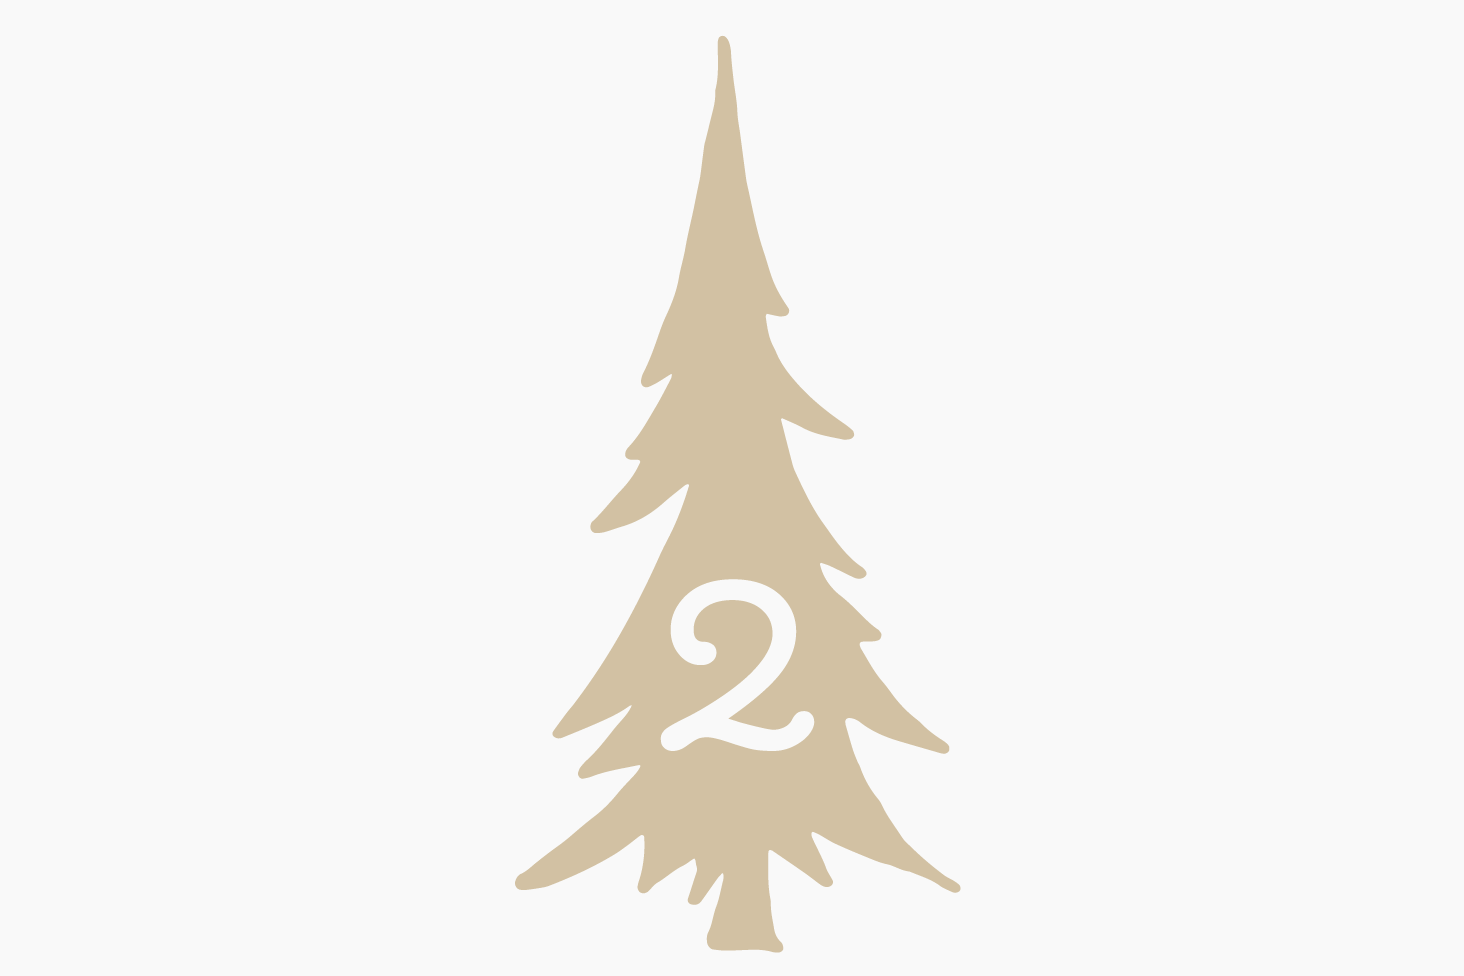 tree-icon-2.png